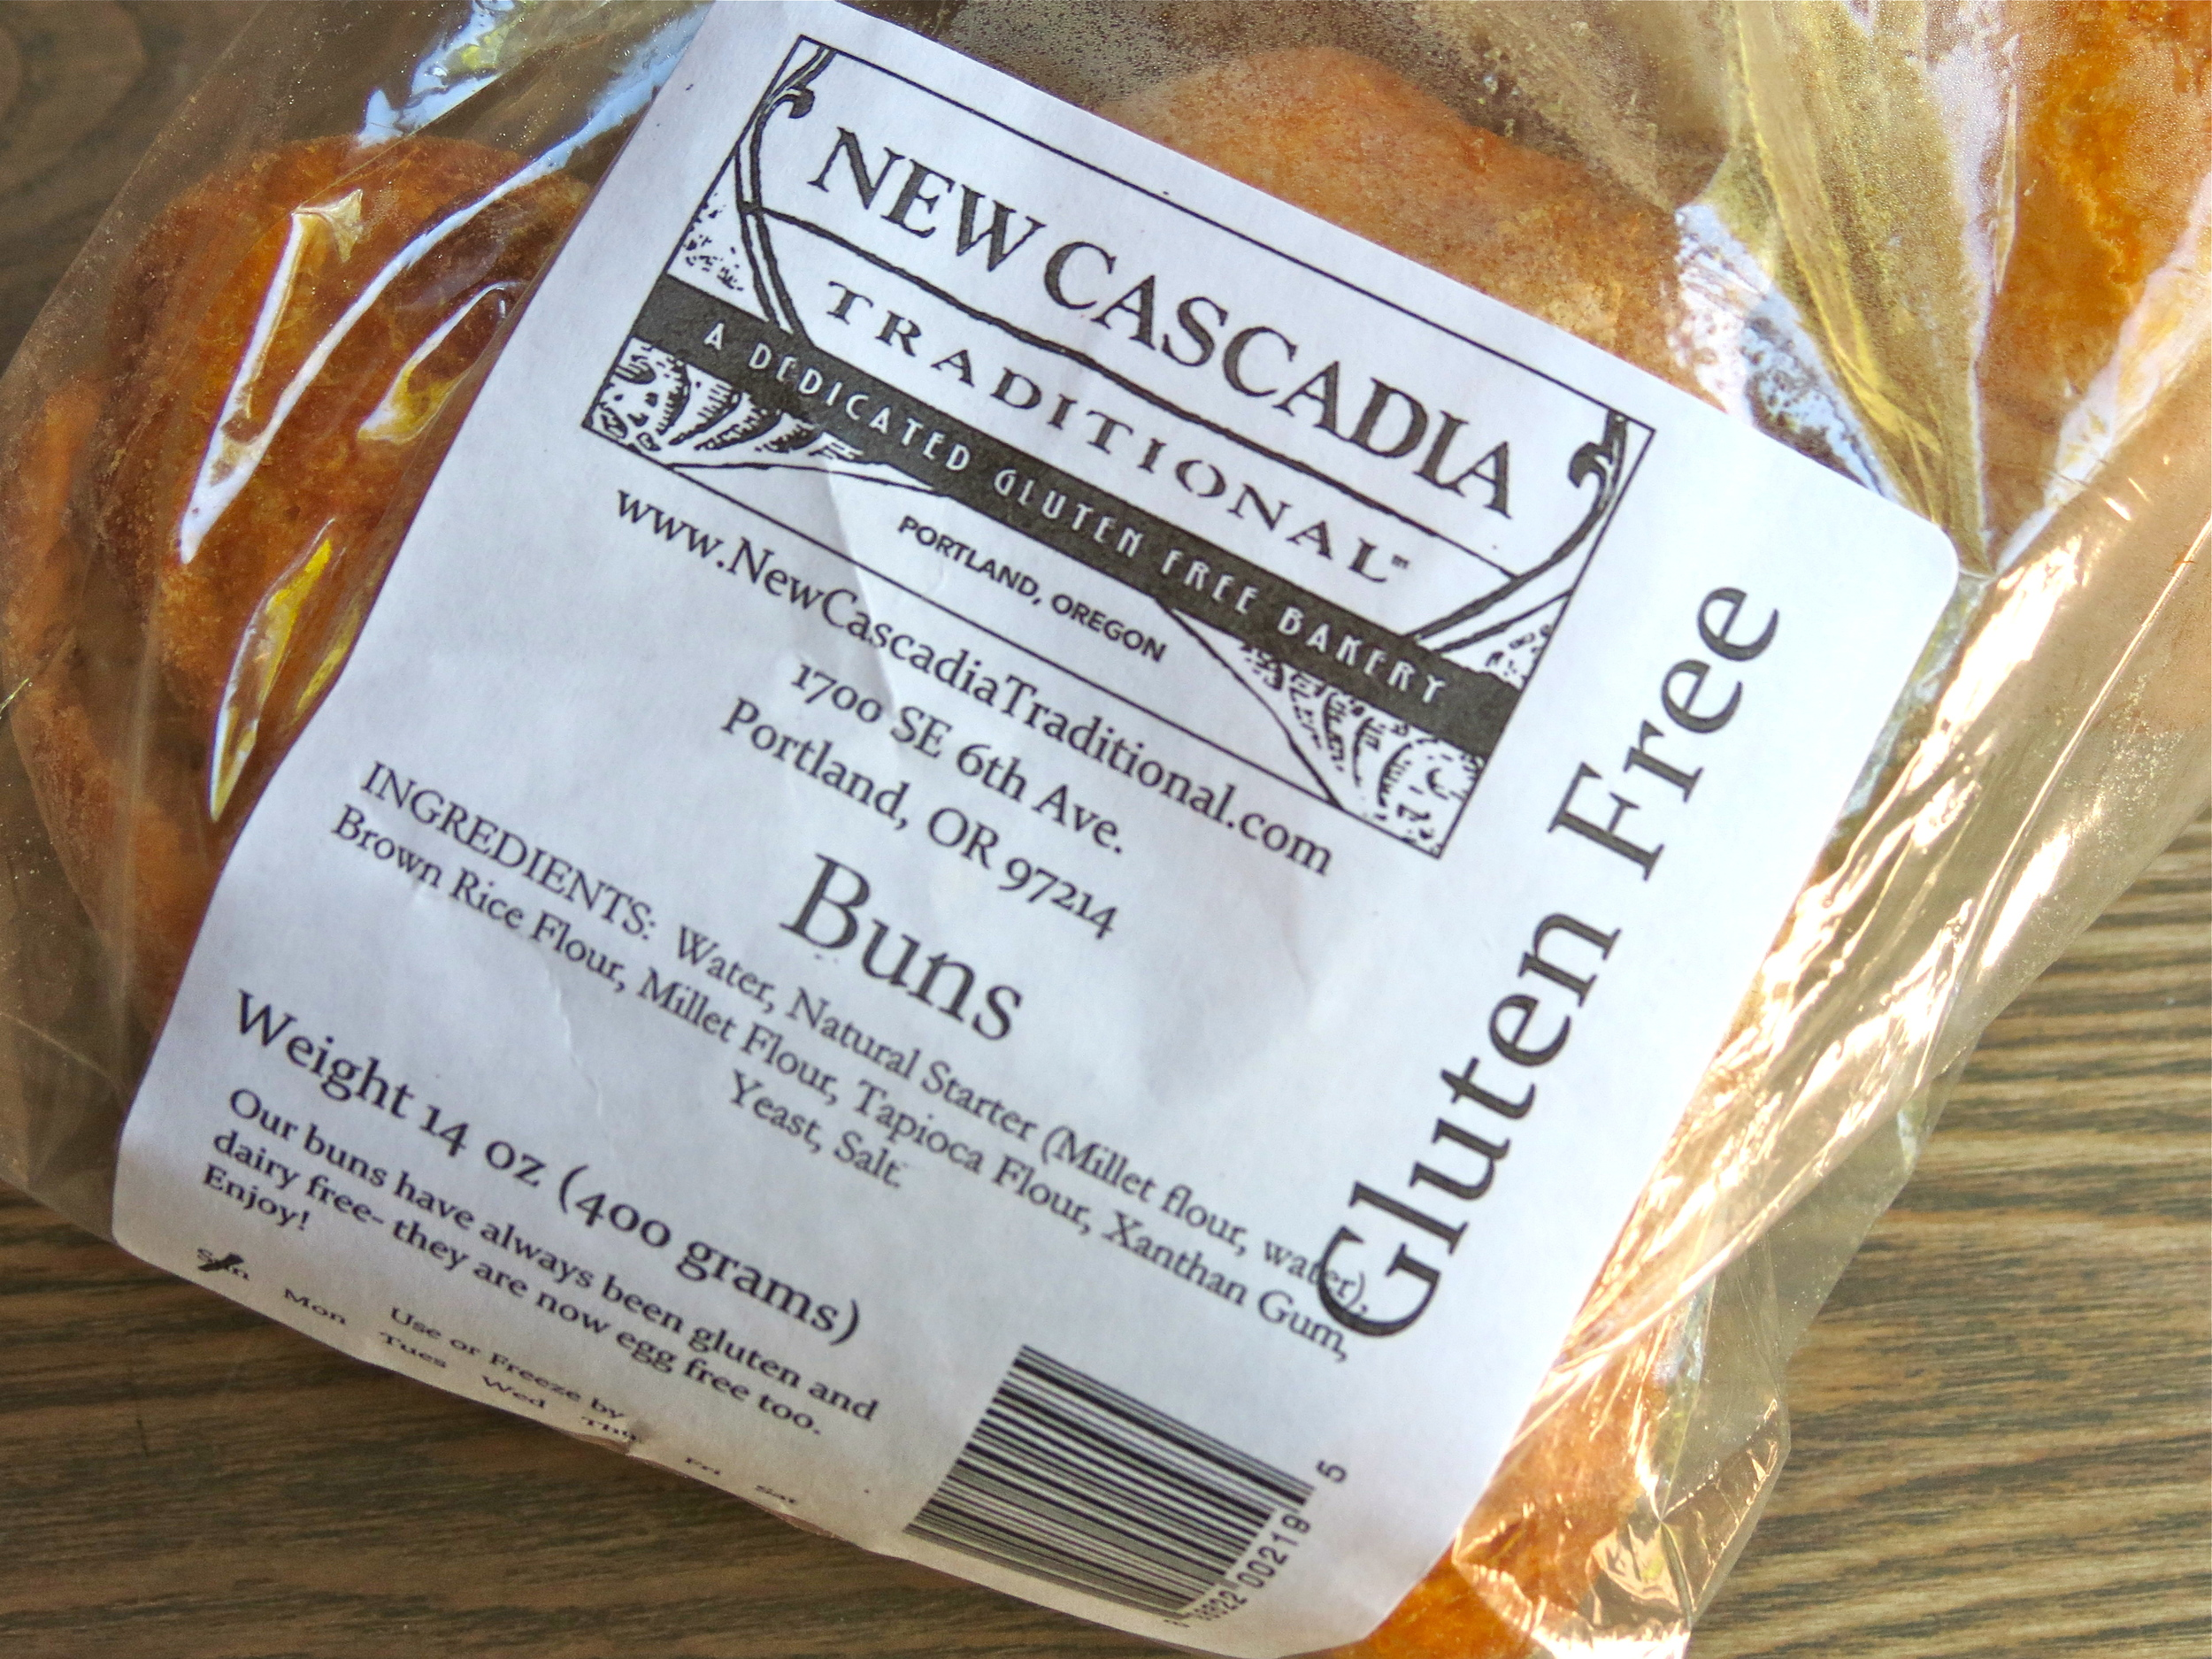 Delicious gluten-free buns from New Cascadia.